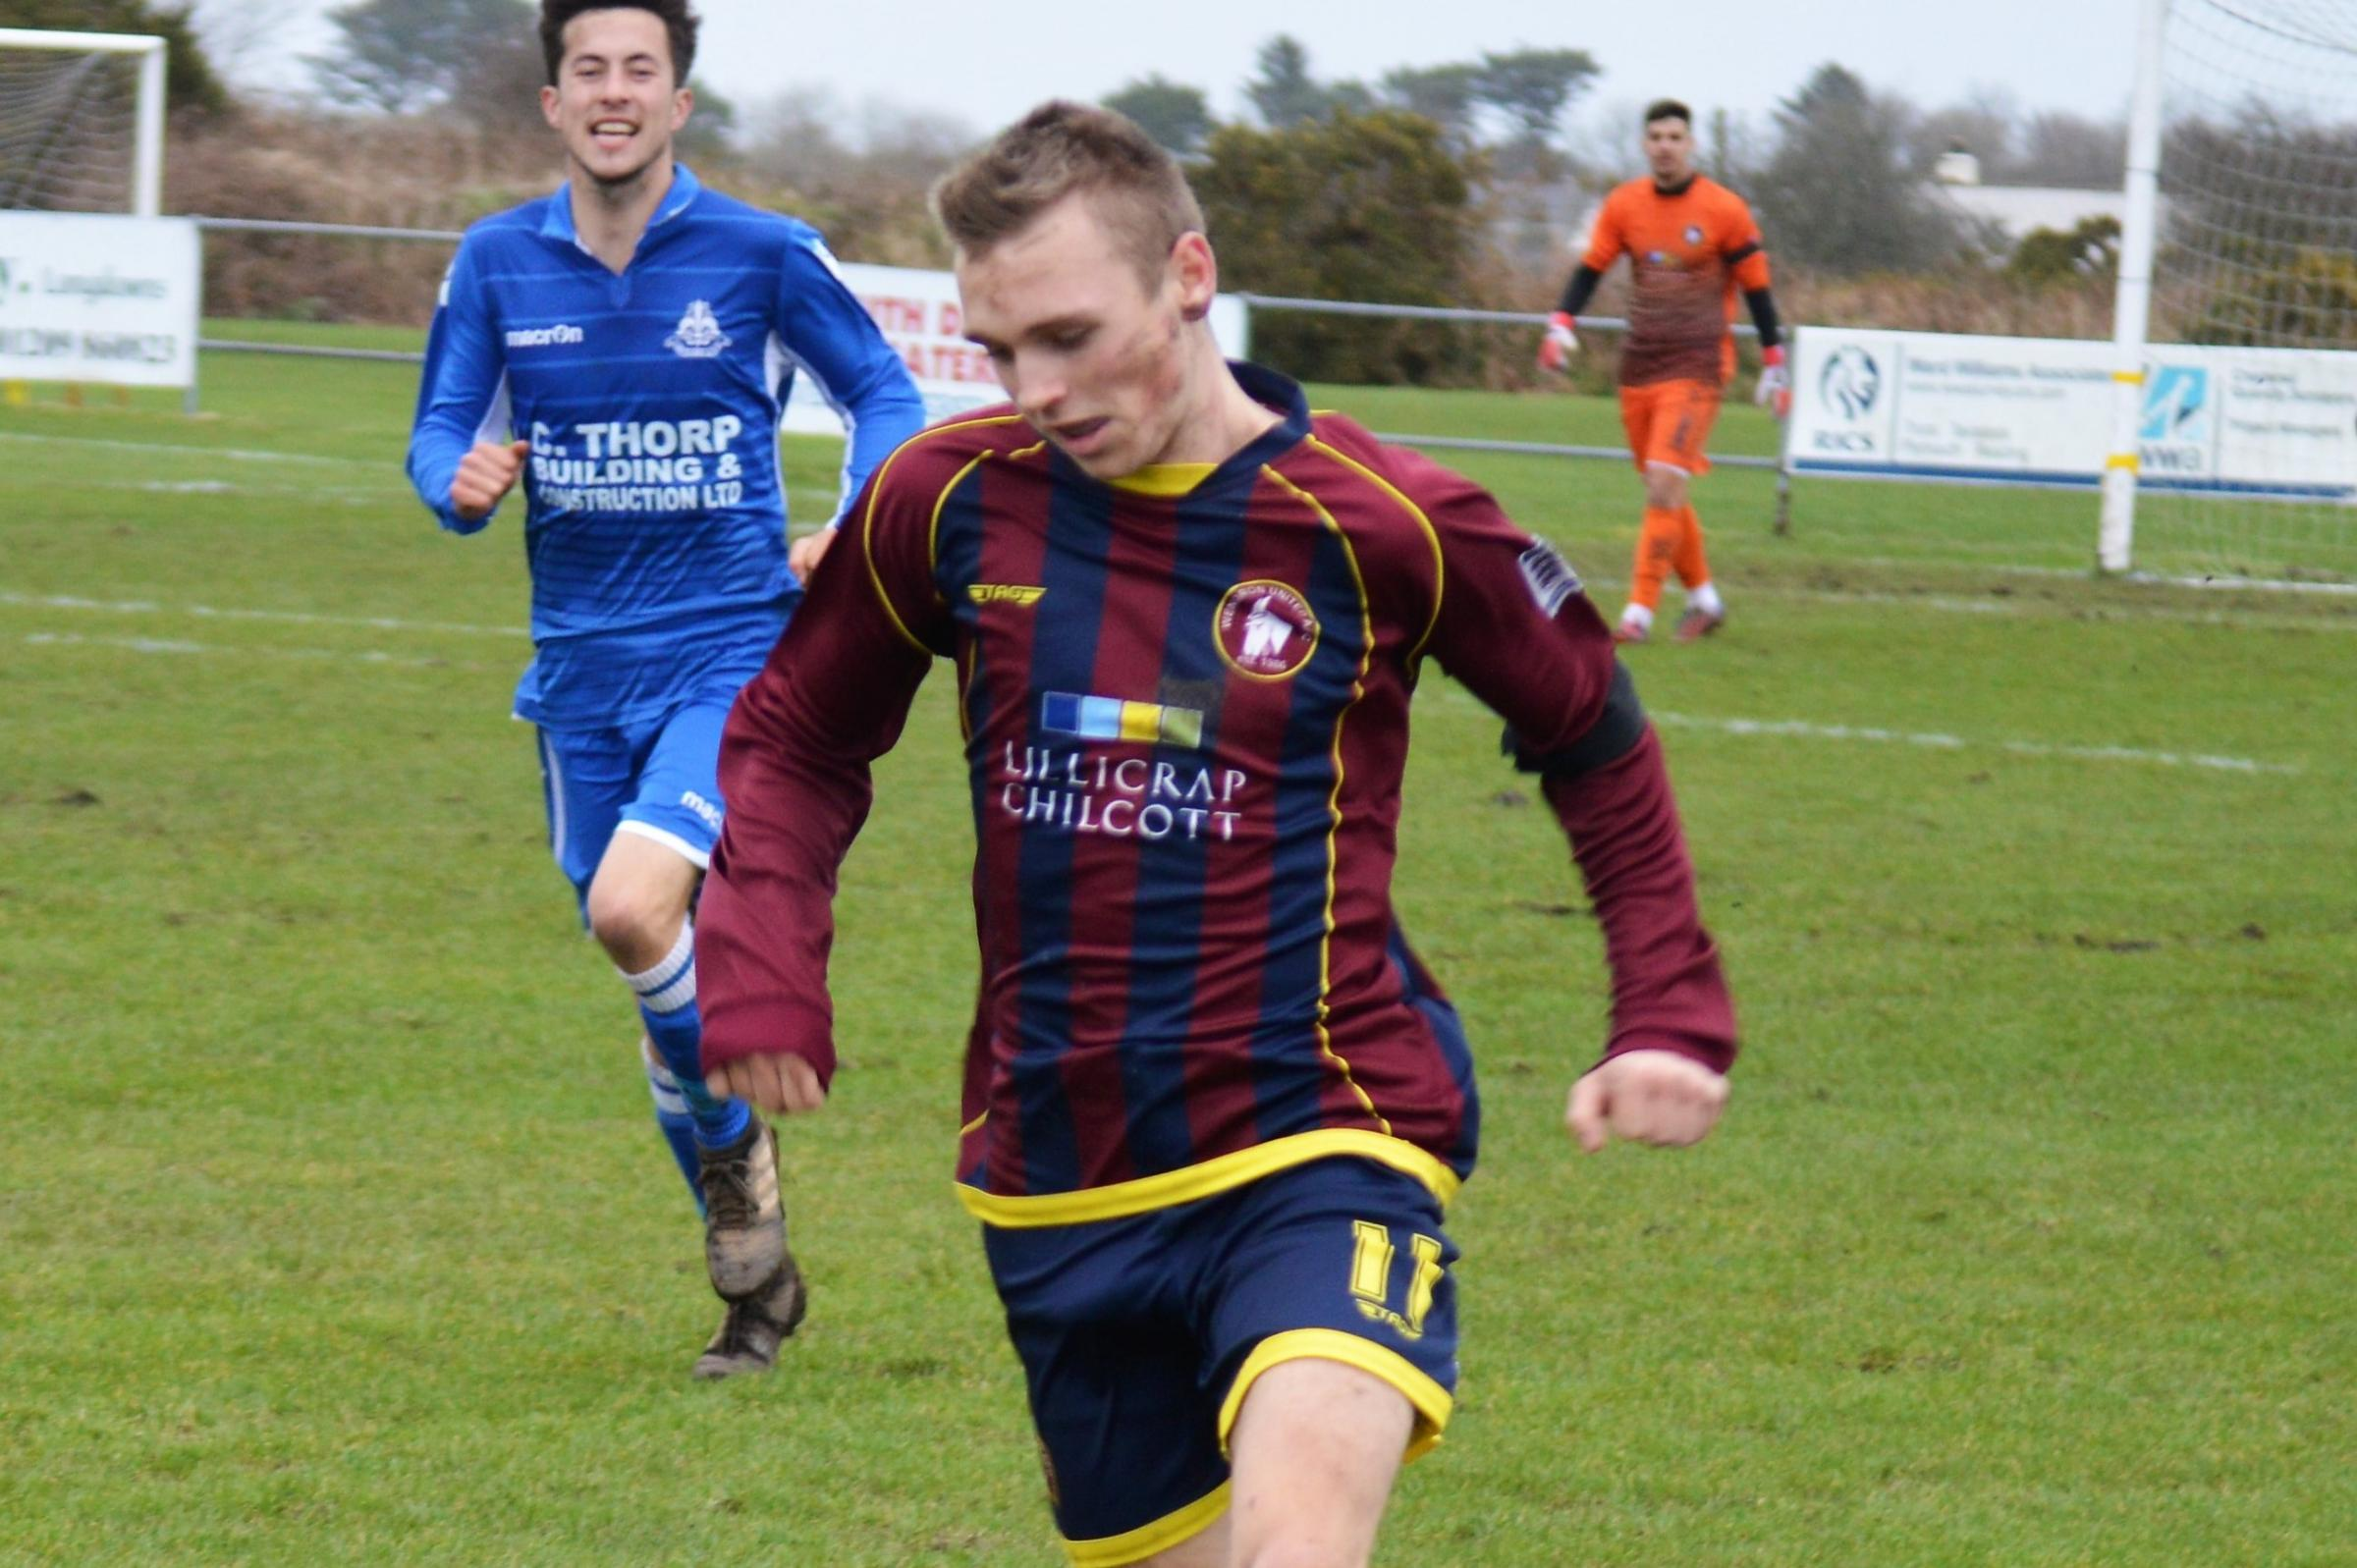 Cameron Wheat scored the second goal of Wendron United's 2-0 win at home to Bere Alston United on Saturday